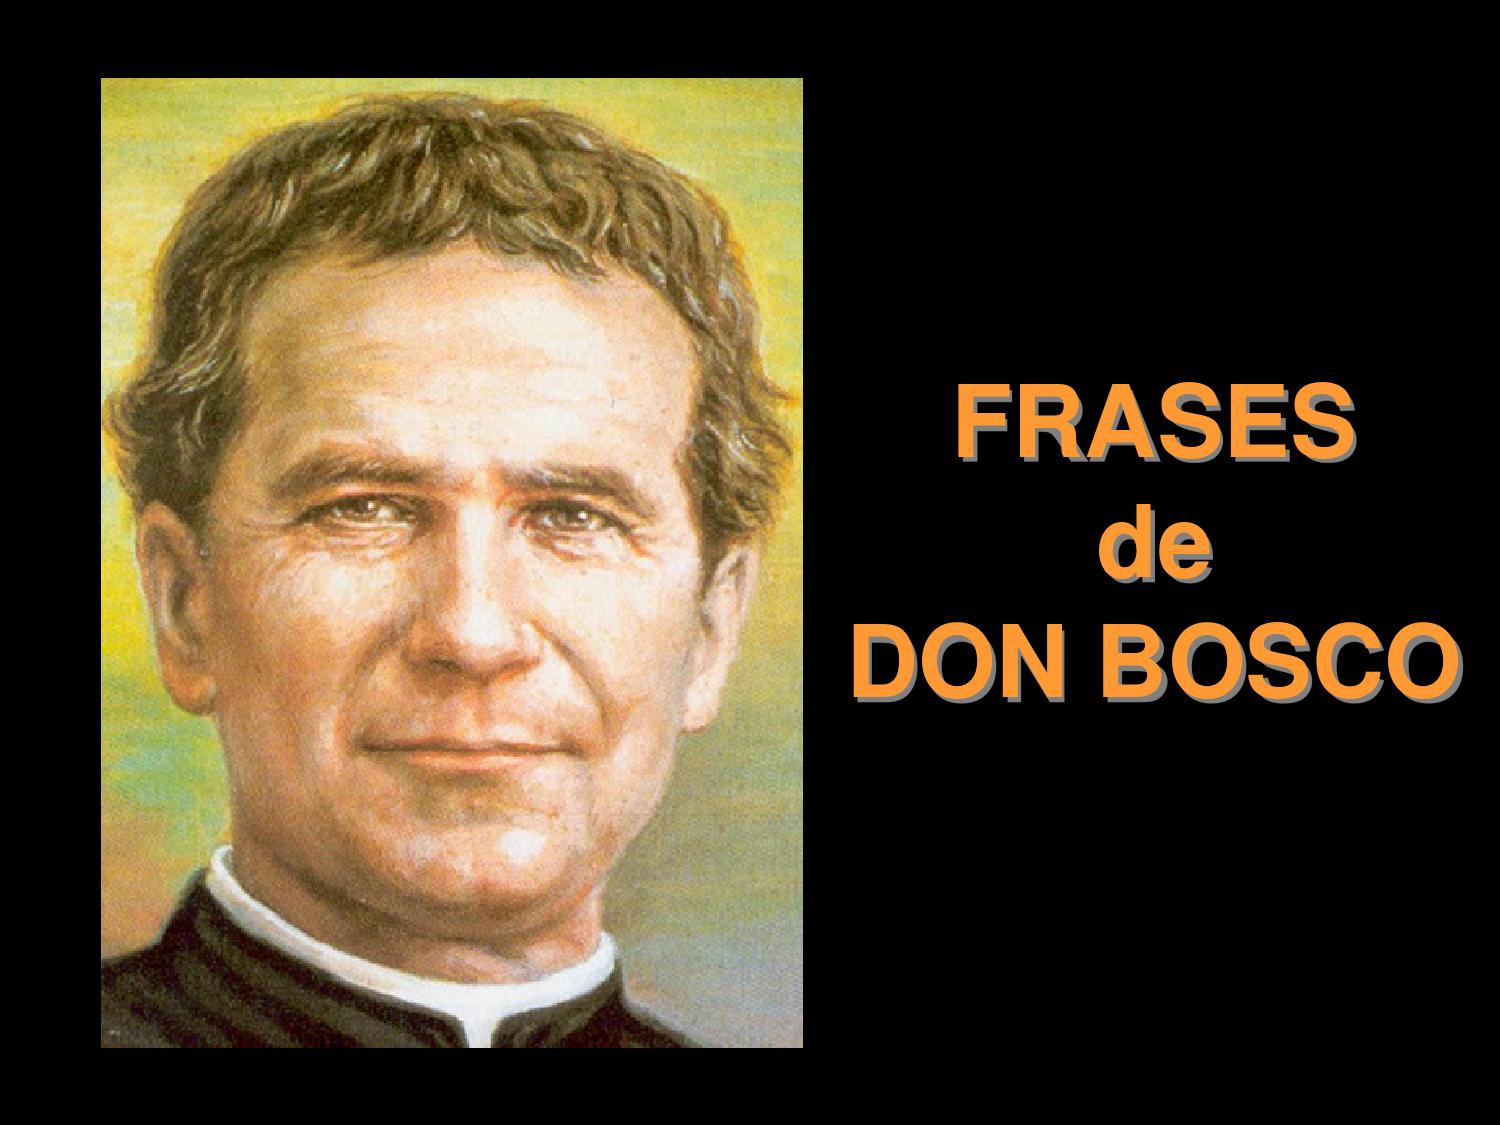 Frases De Don Bosco By Salesianos Urnieta Issuu